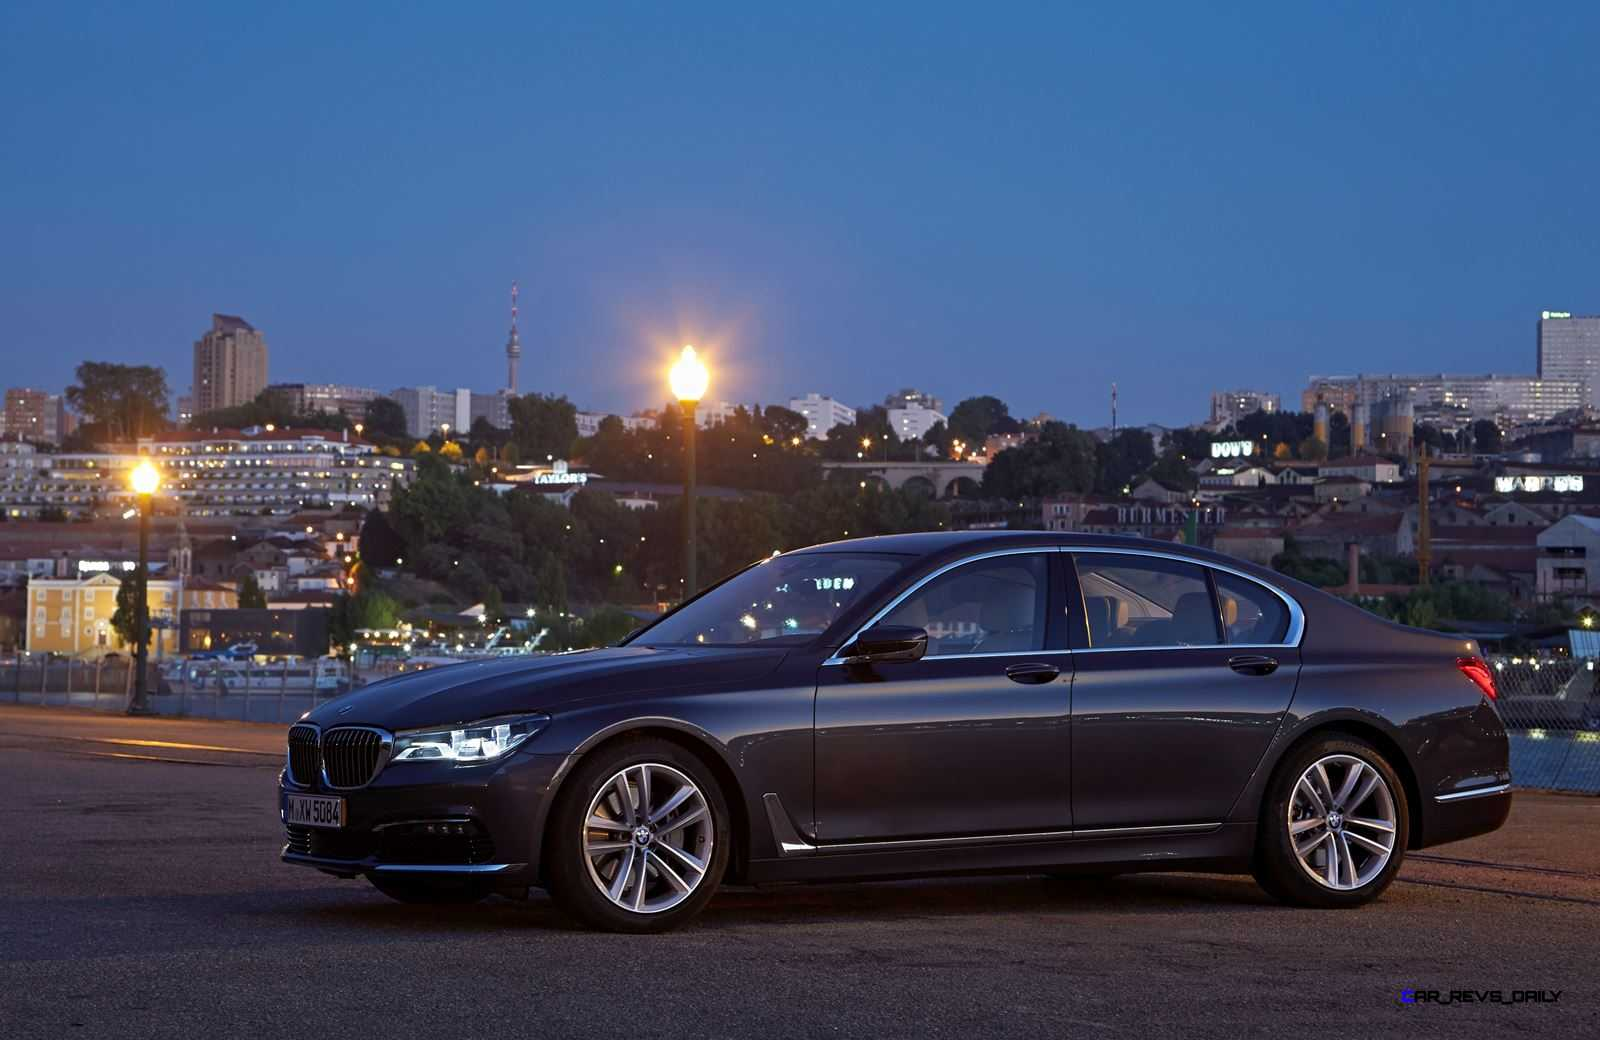 Bmw Exterior: 2016 BMW 750Li Exterior Photos 78